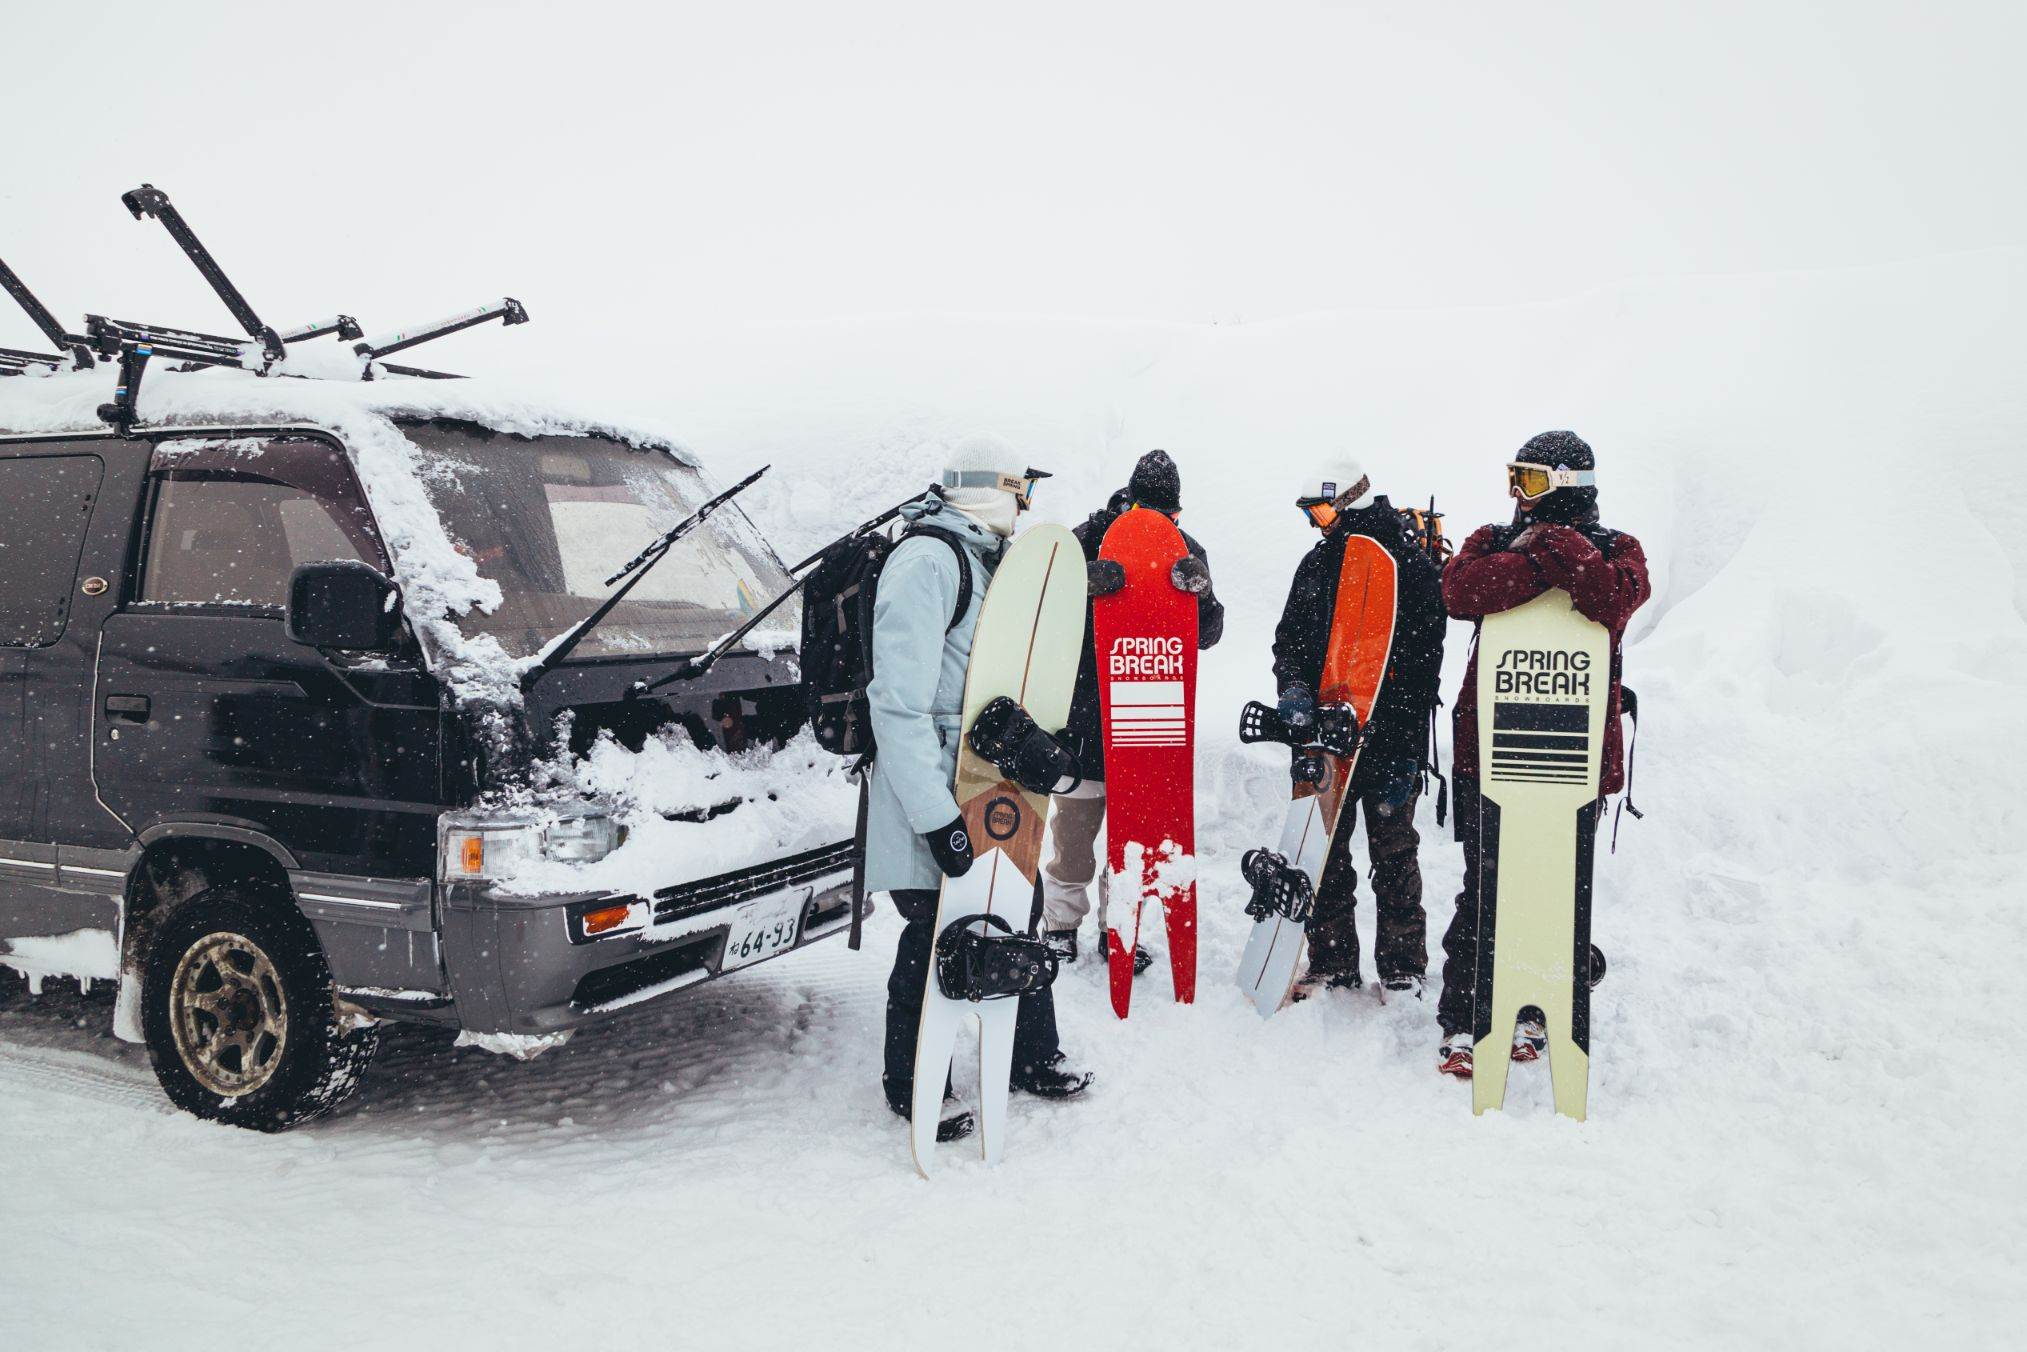 Snowboarders stand in front of car holding their boards.